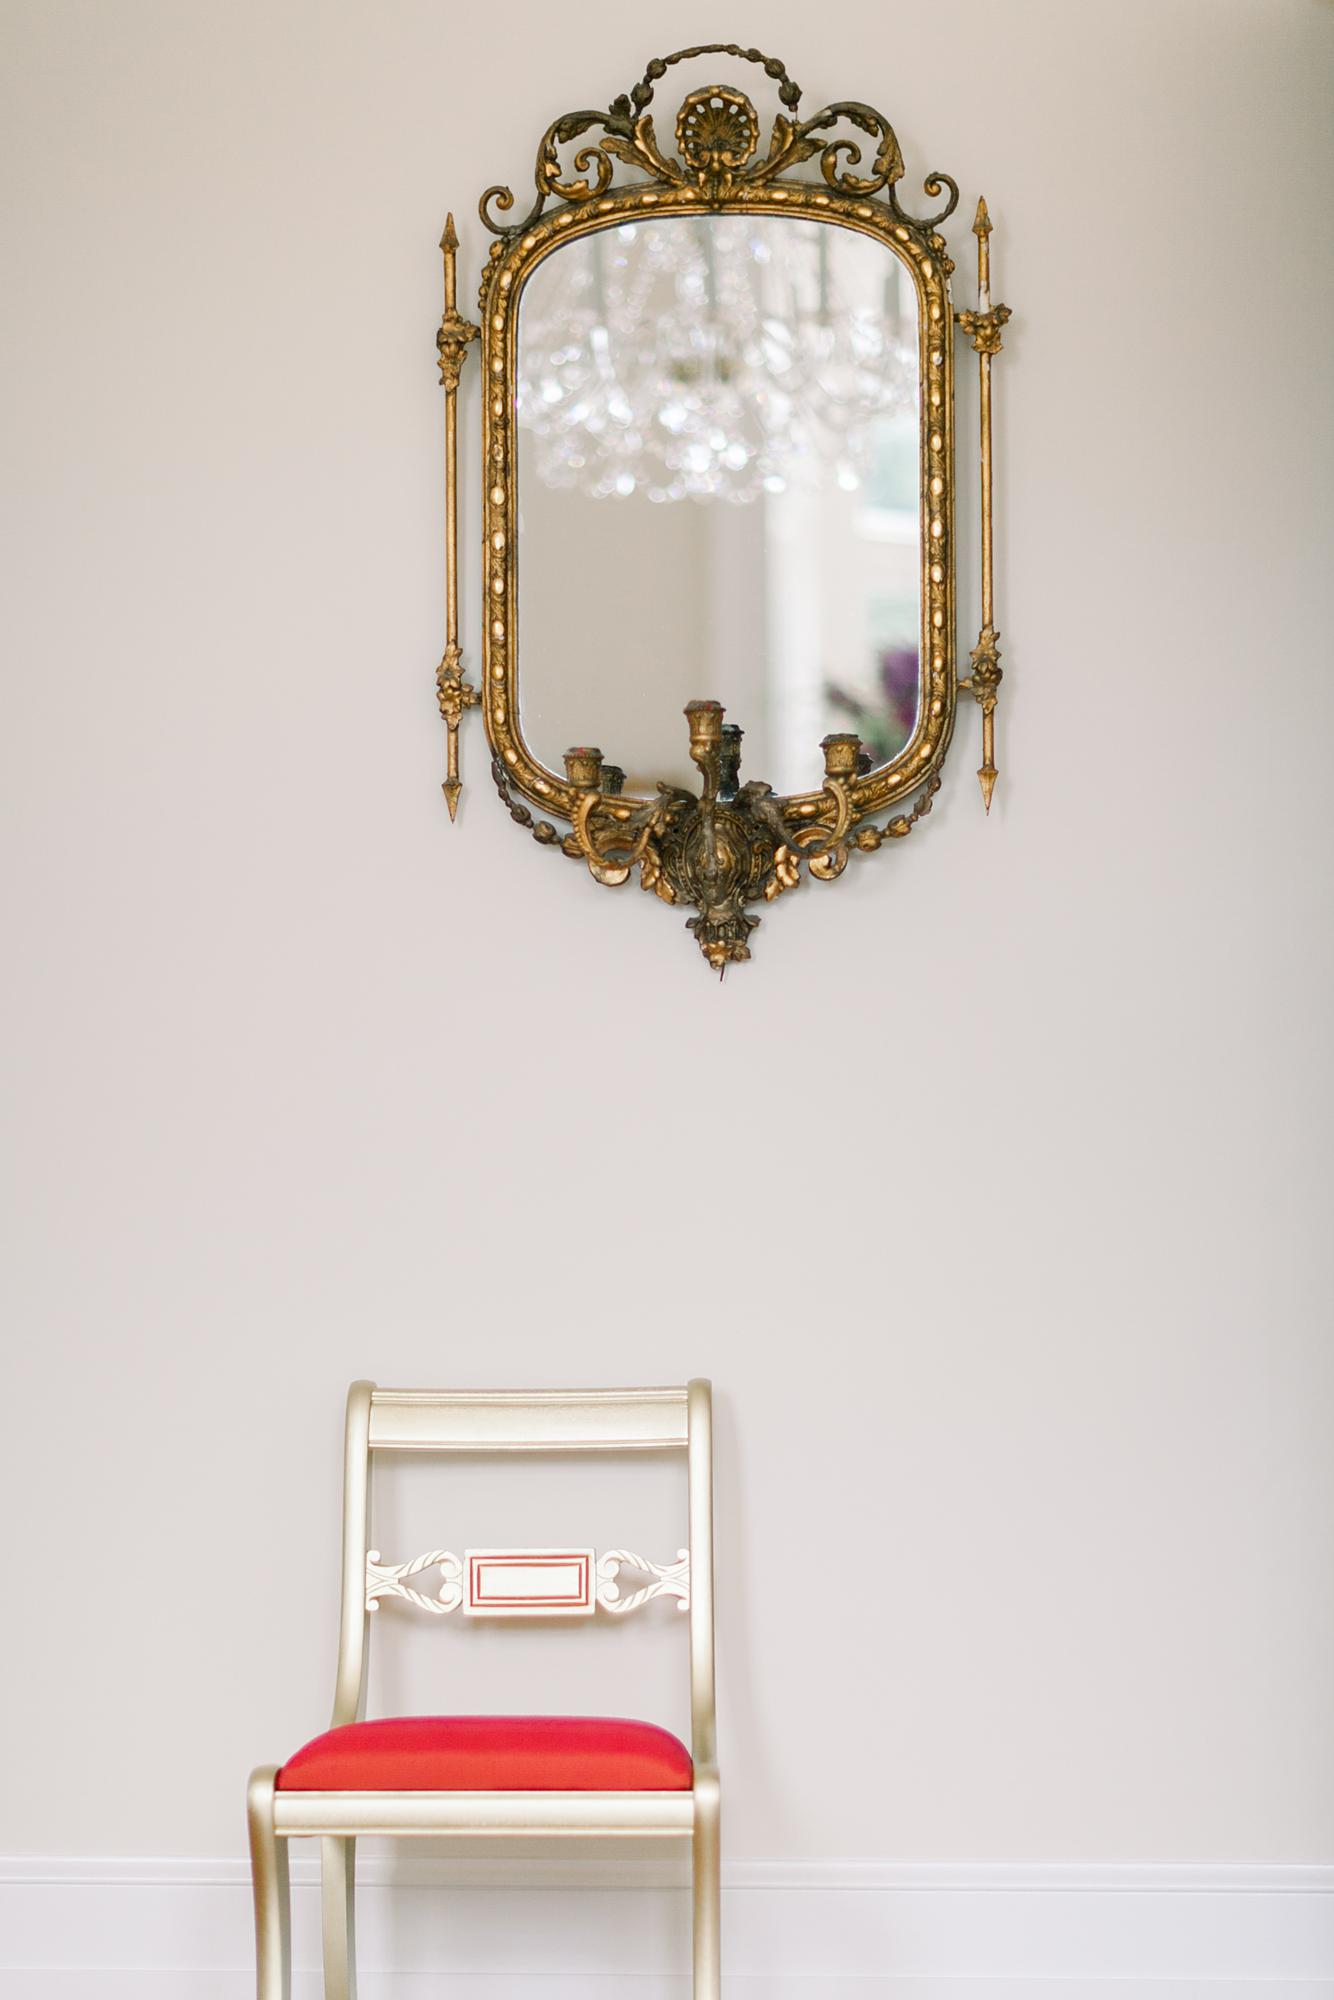 Connecticut Private Estate Wedding | Miki & Sonja Photography | mikiandsonja.com